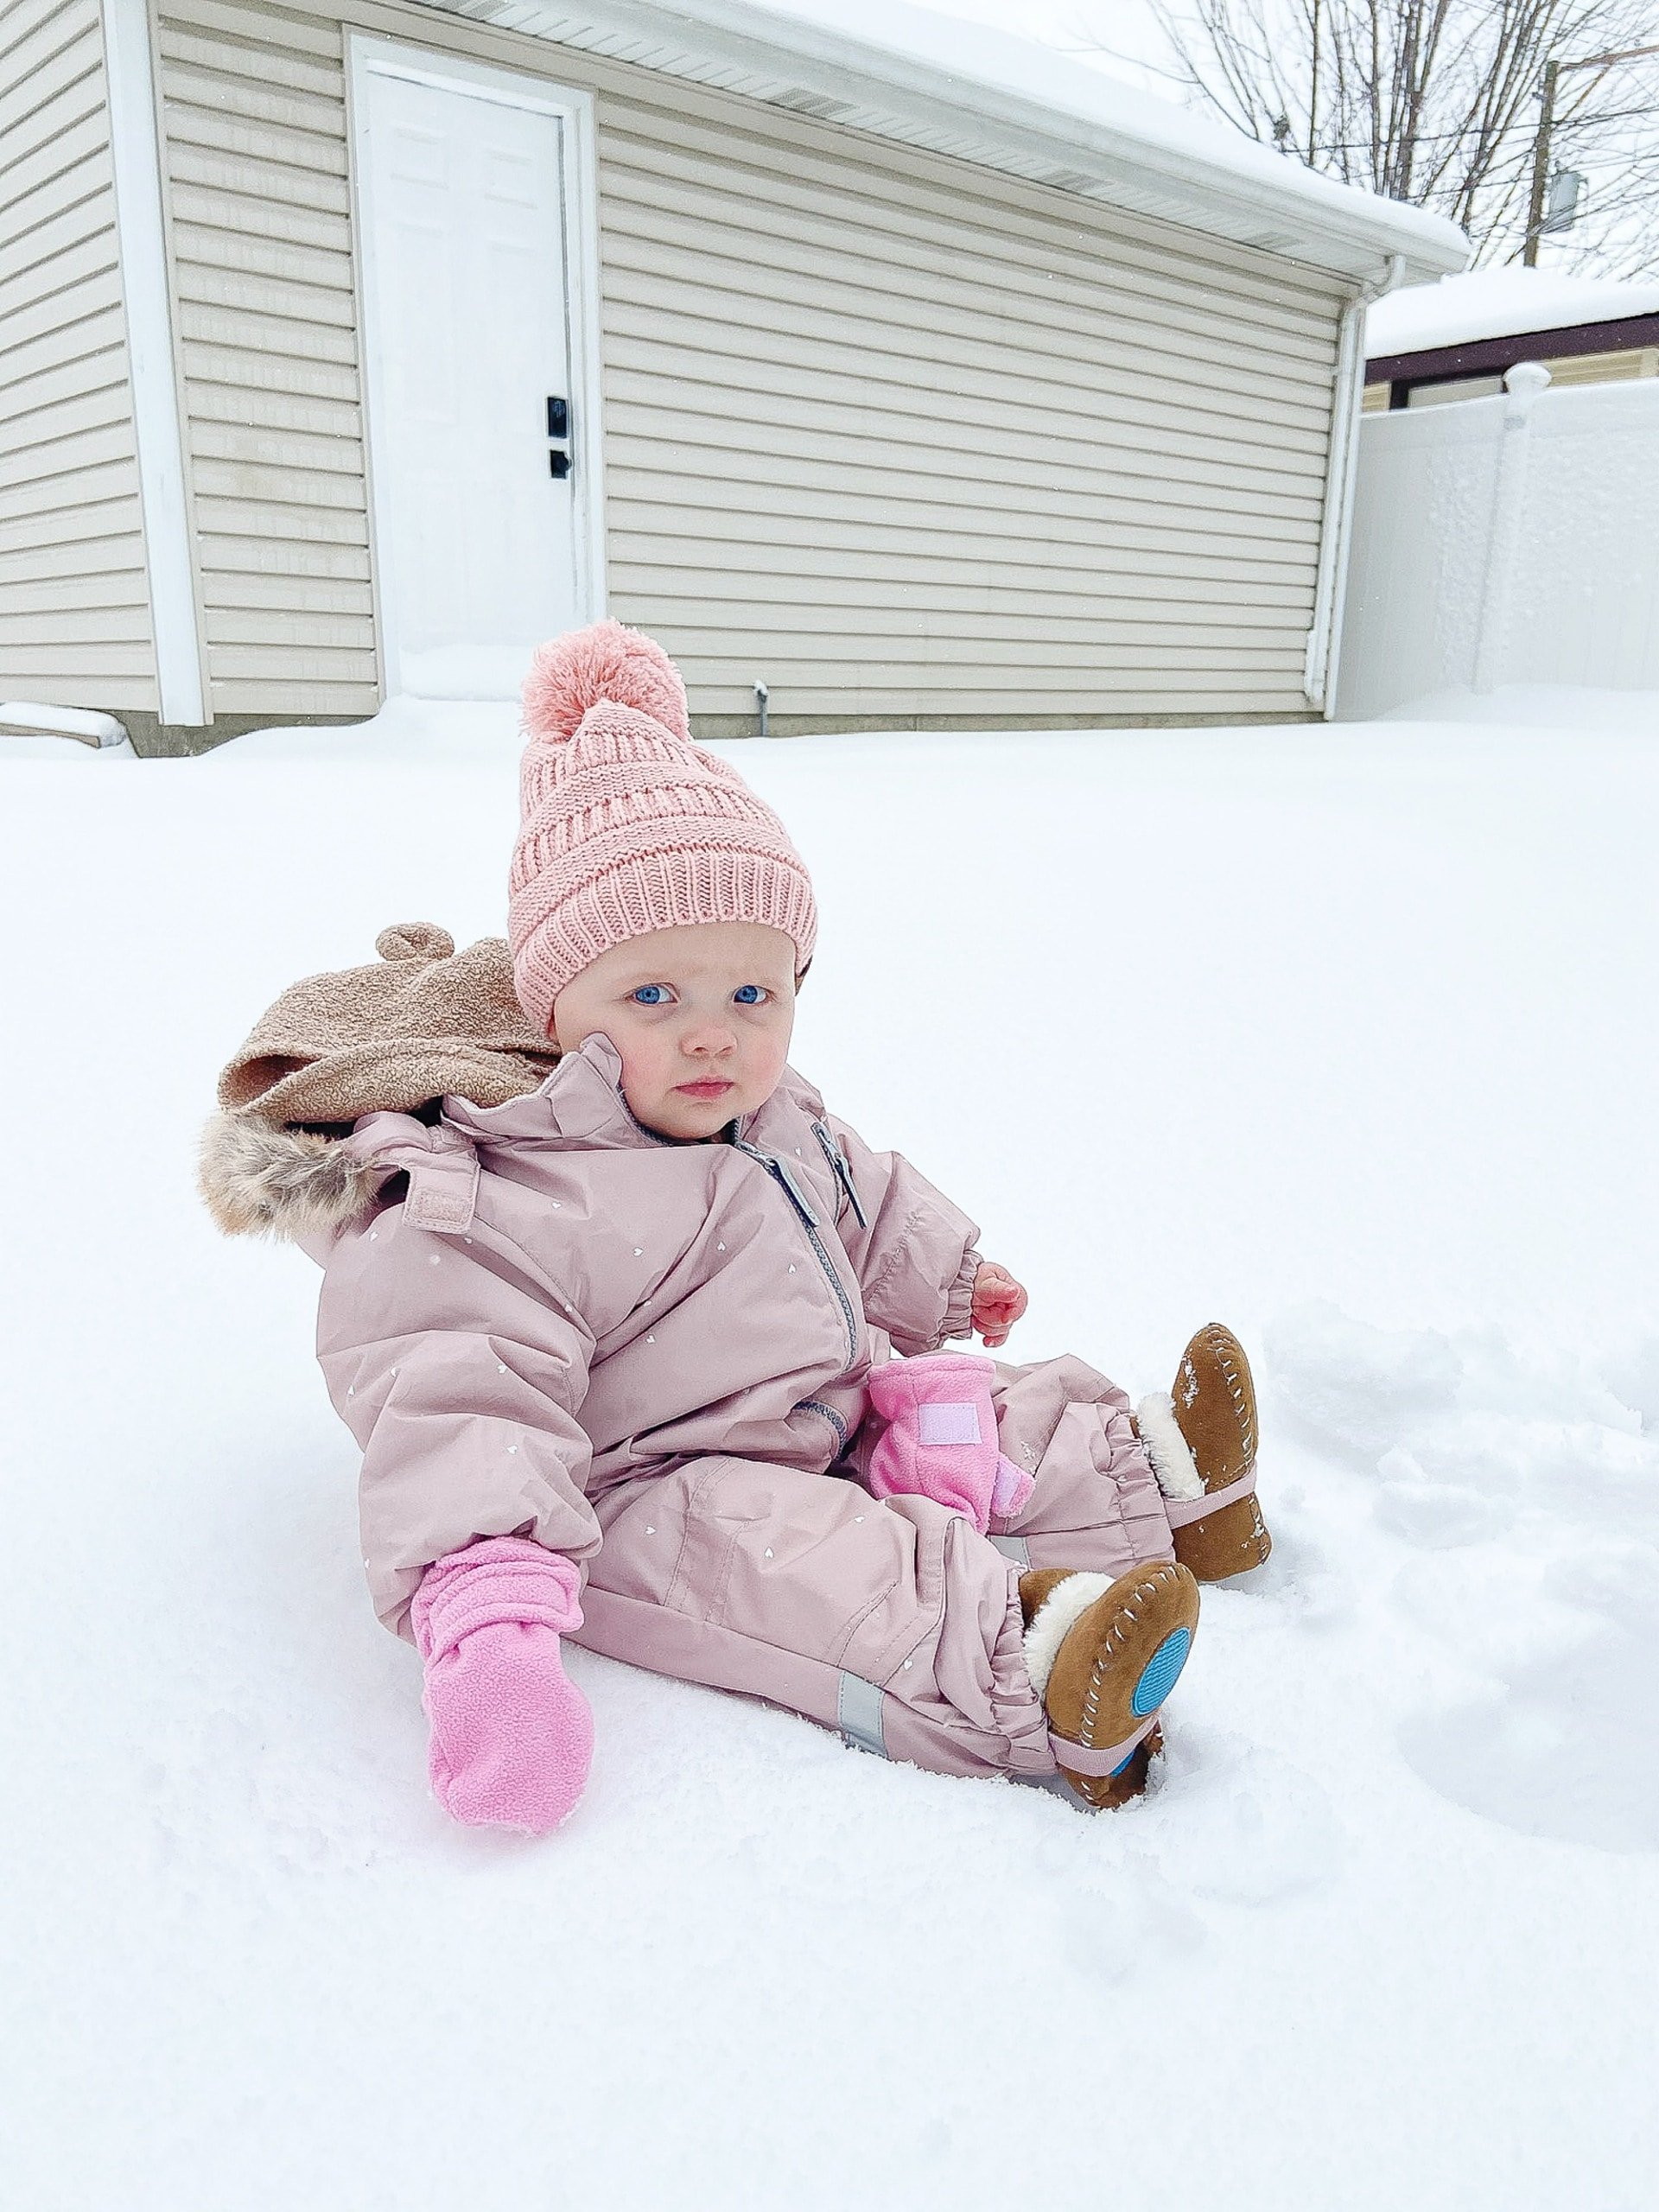 Rory out in the snow